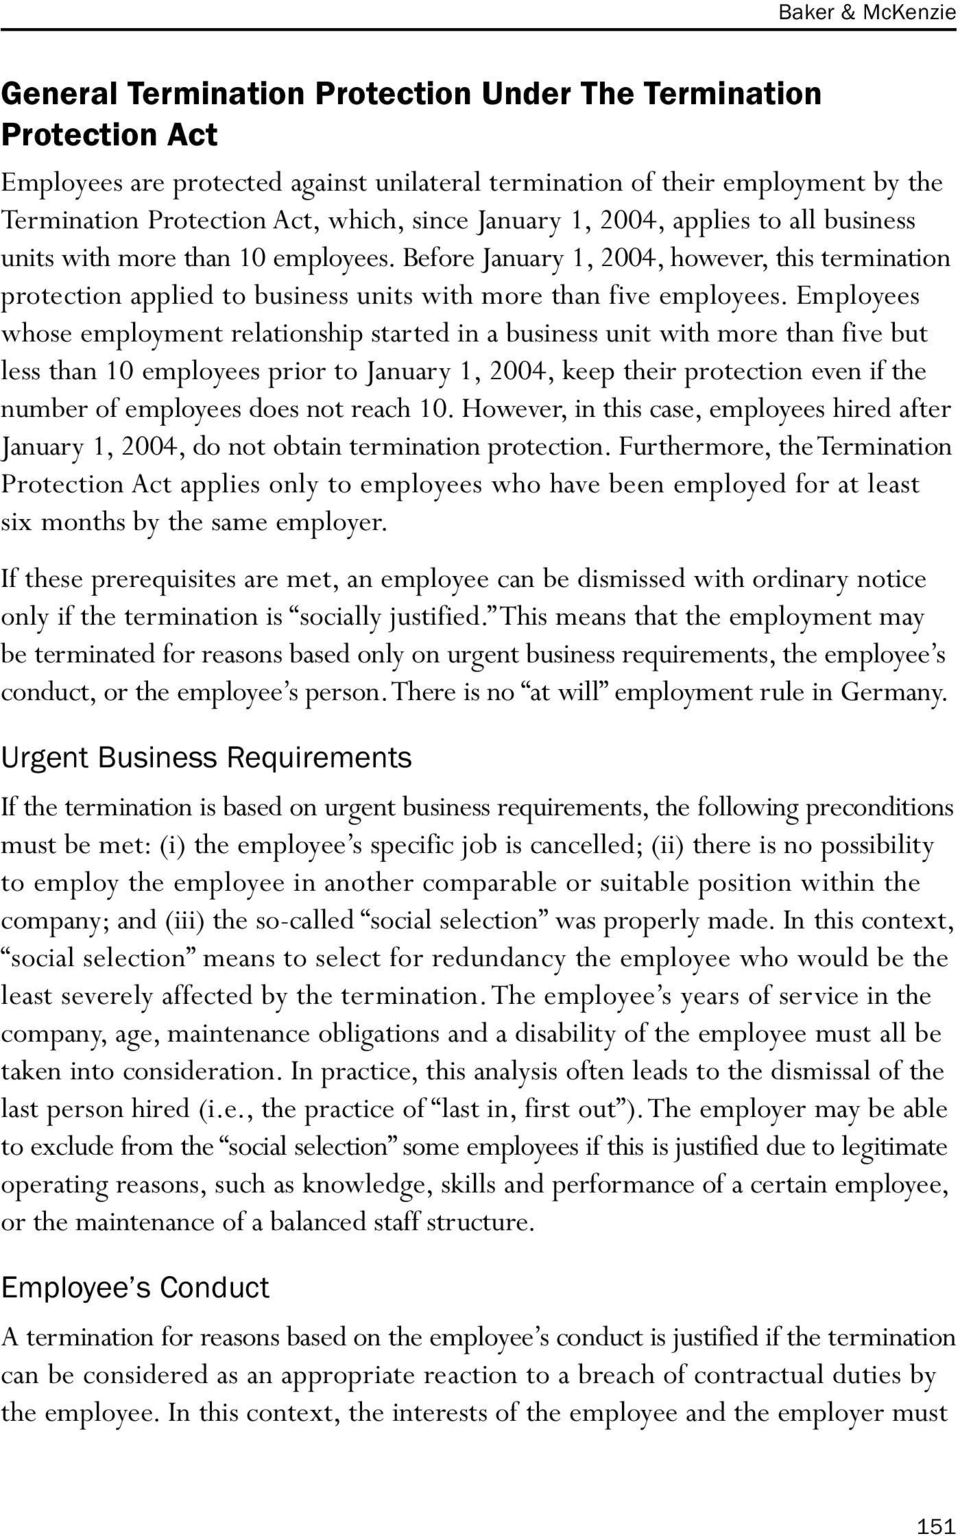 Before January 1, 2004, however, this termination protection applied to business units with more than five employees.